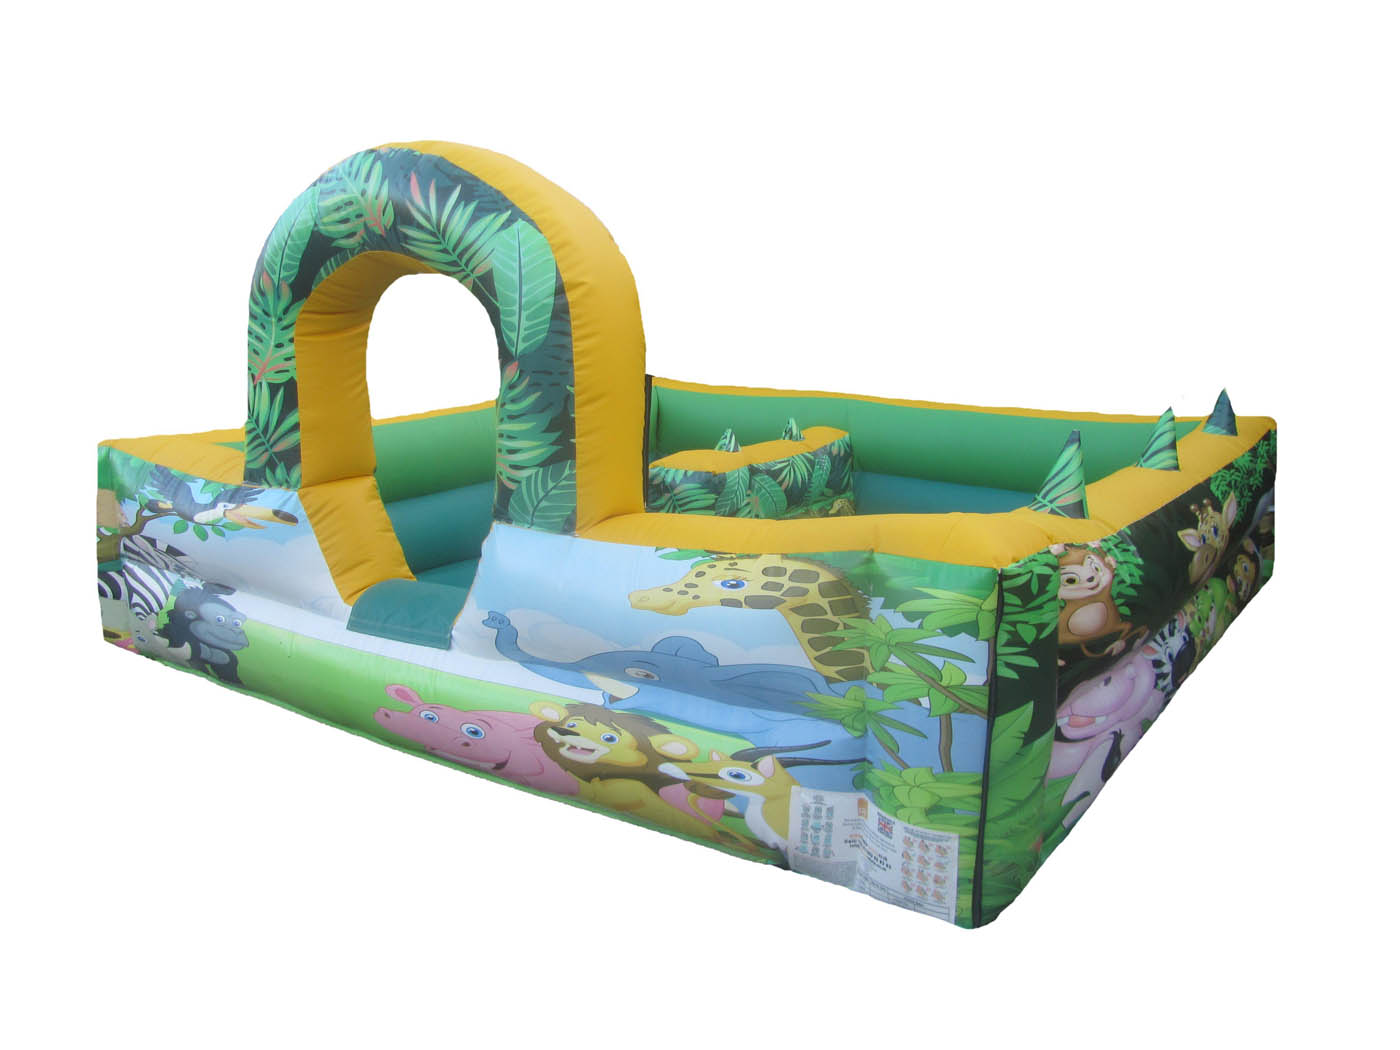 Commercial Inflatable Ball Pond with Animal Artwork